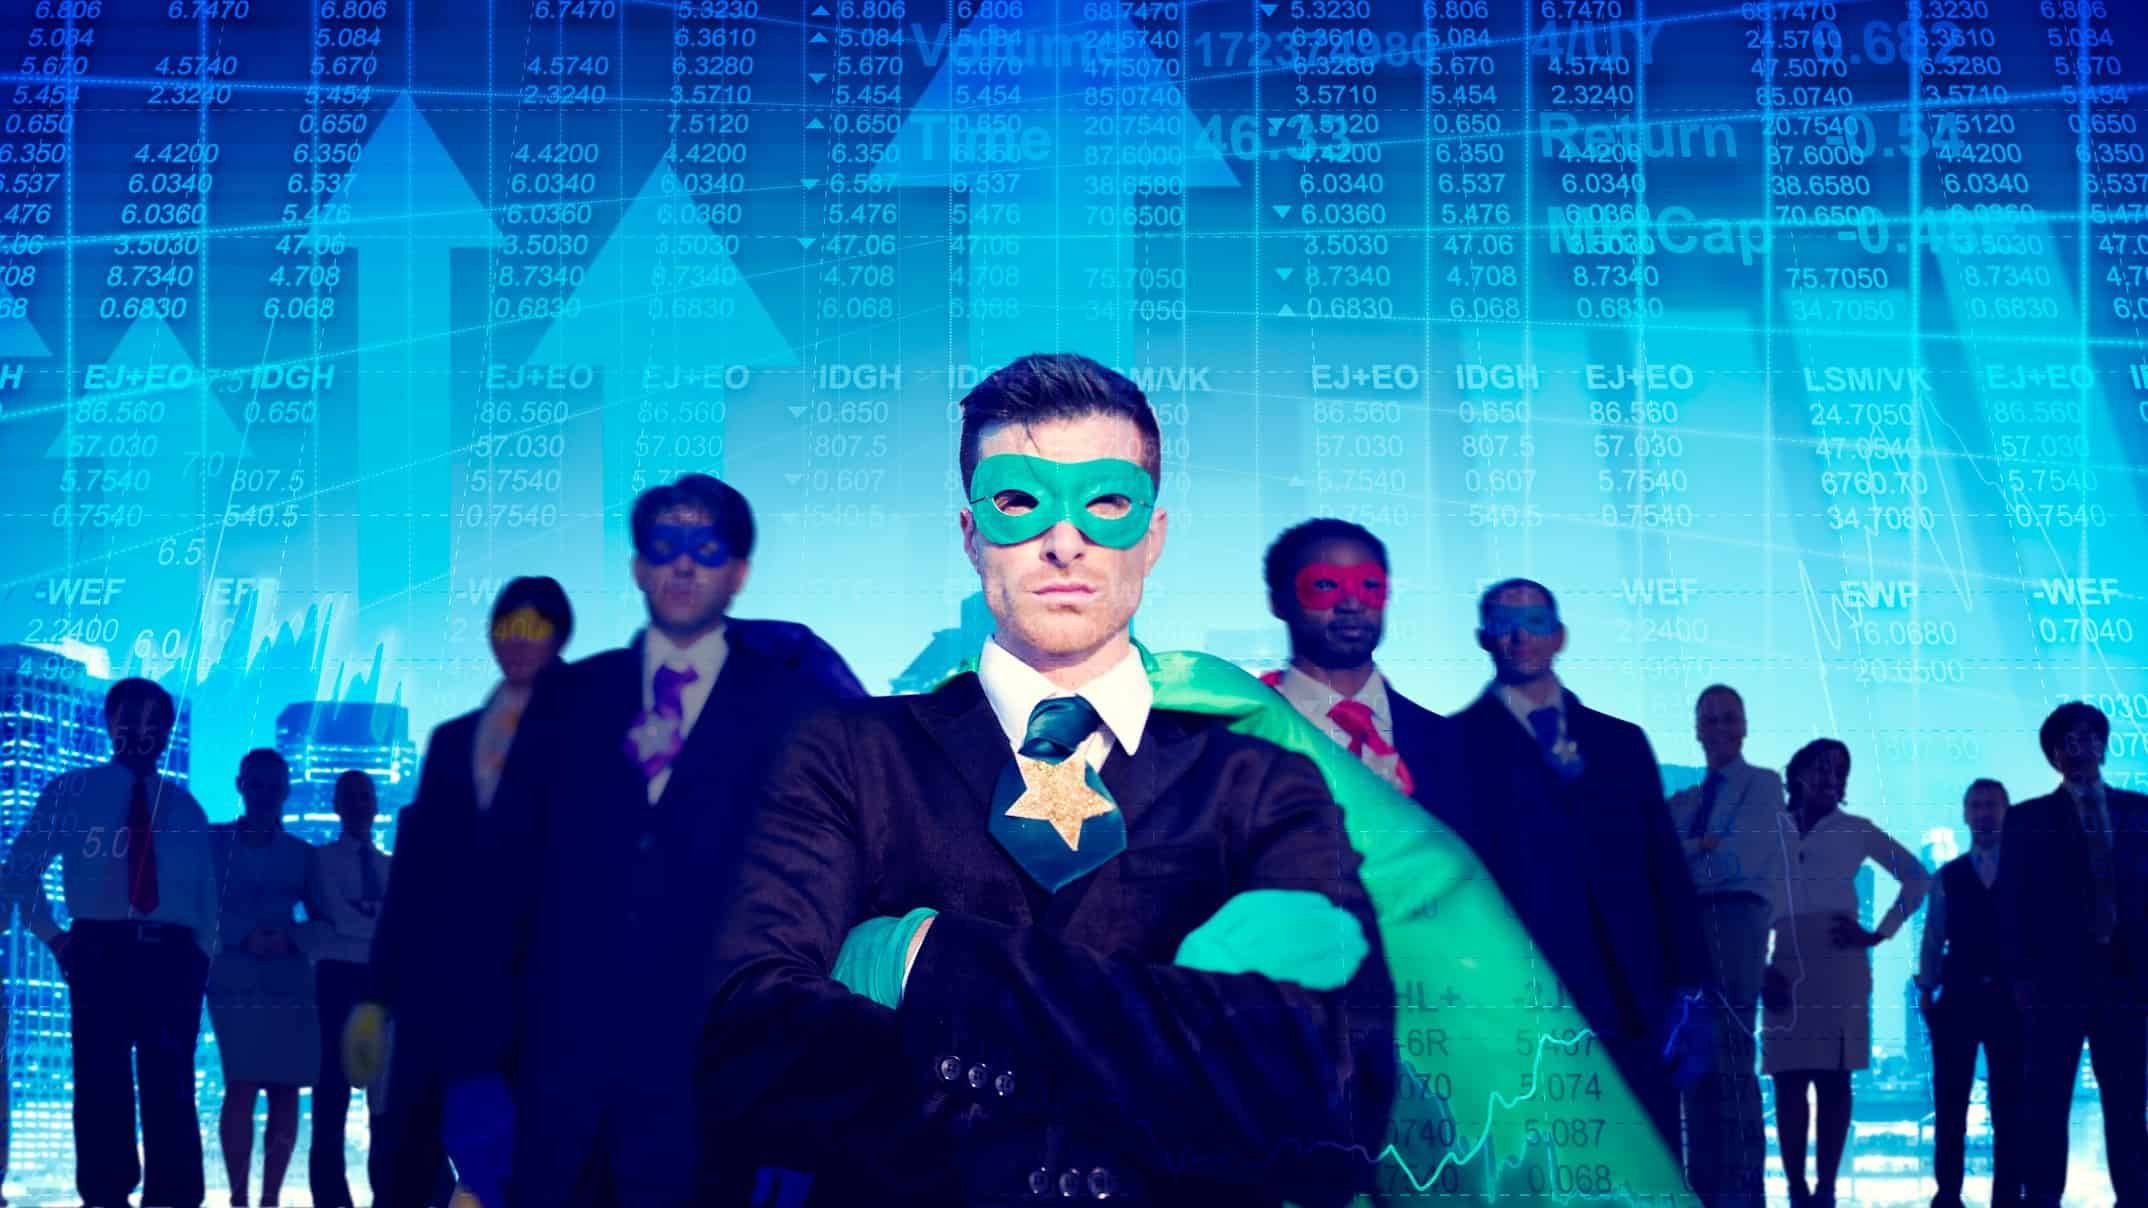 Heroes in masks and capes stand before the ASX share market, ready to save the day